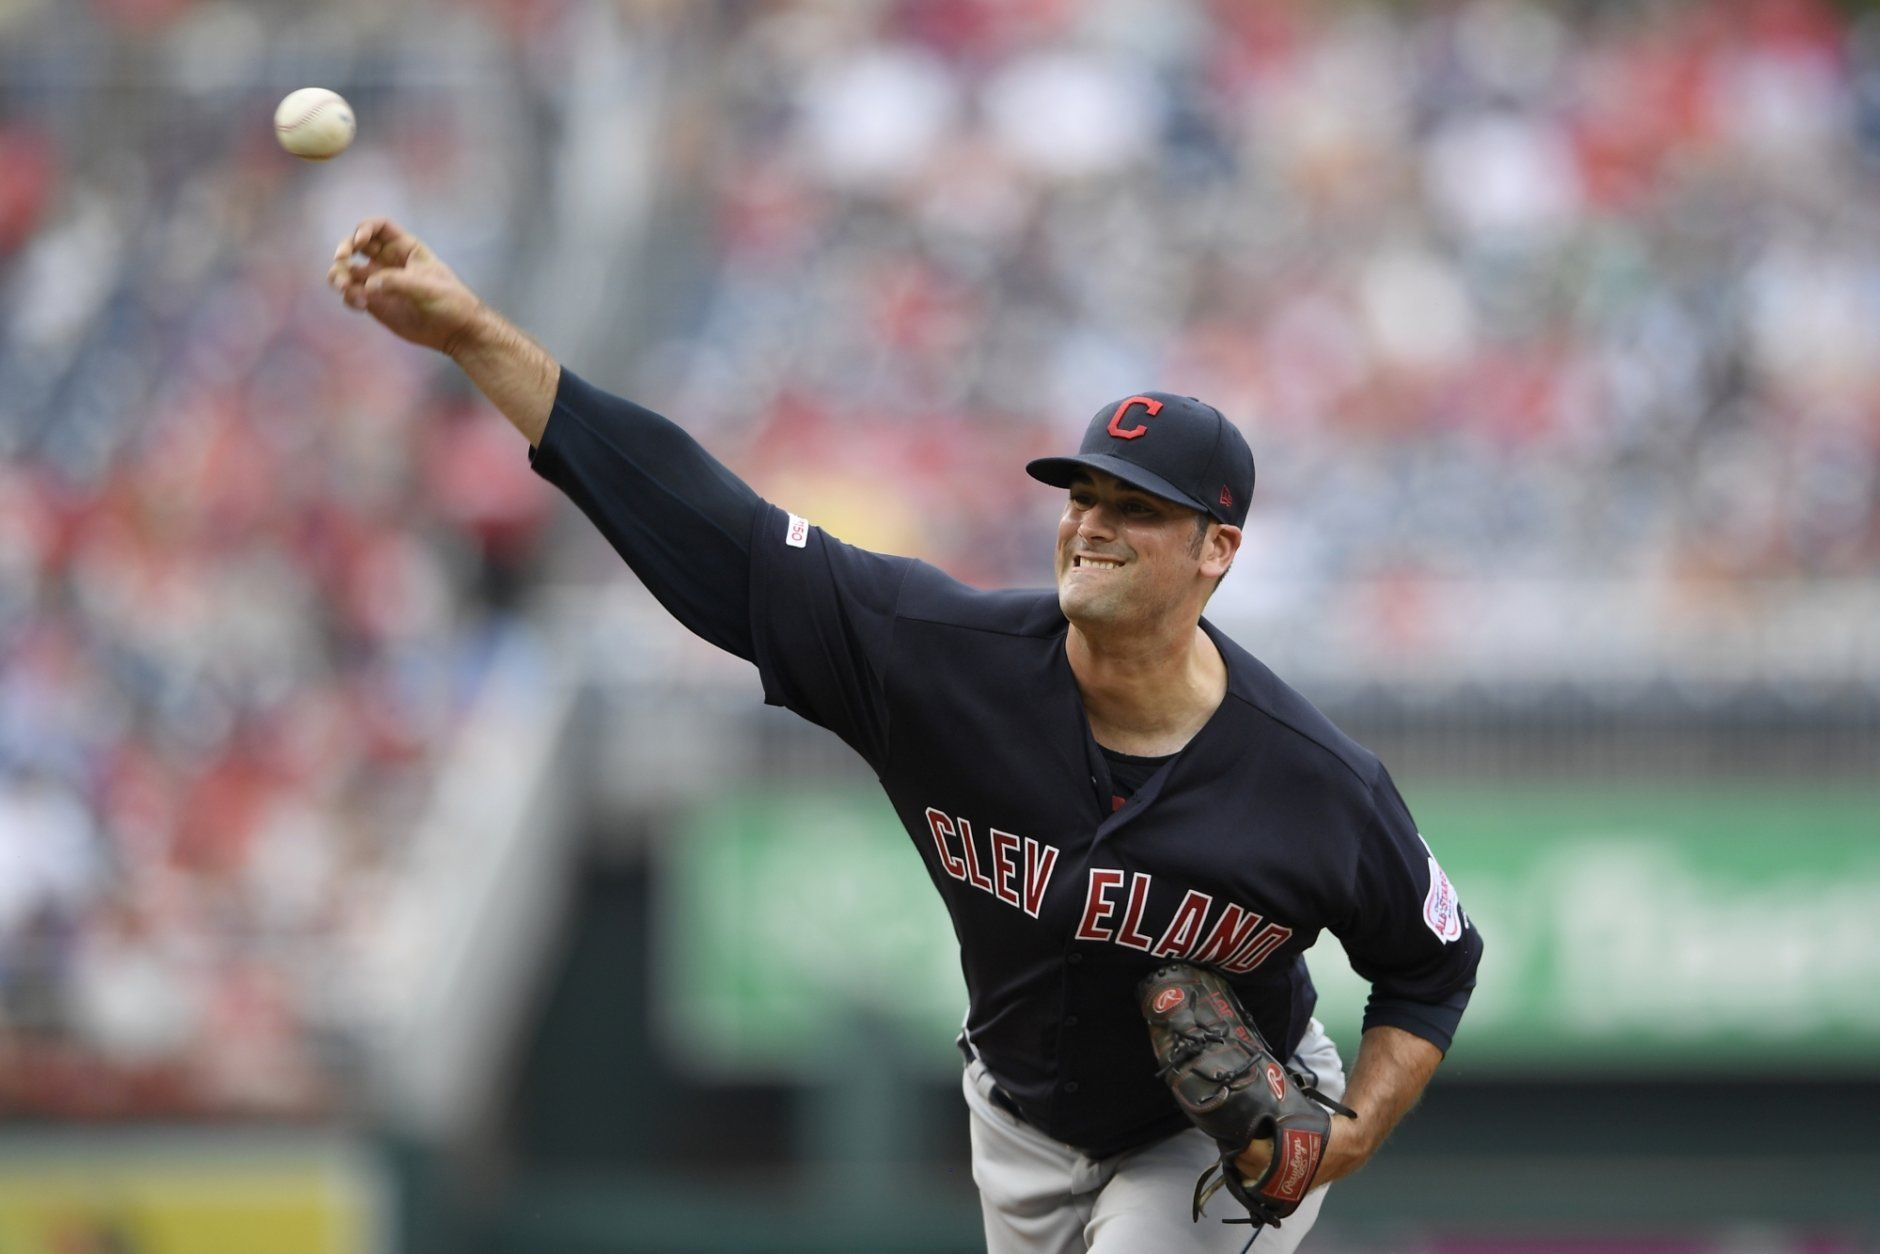 Cleveland Indians starting pitcher Adam Plutko delivers during the first inning of a baseball game against the Washington Nationals, Saturday, Sept. 28, 2019, in Washington. (AP Photo/Nick Wass)